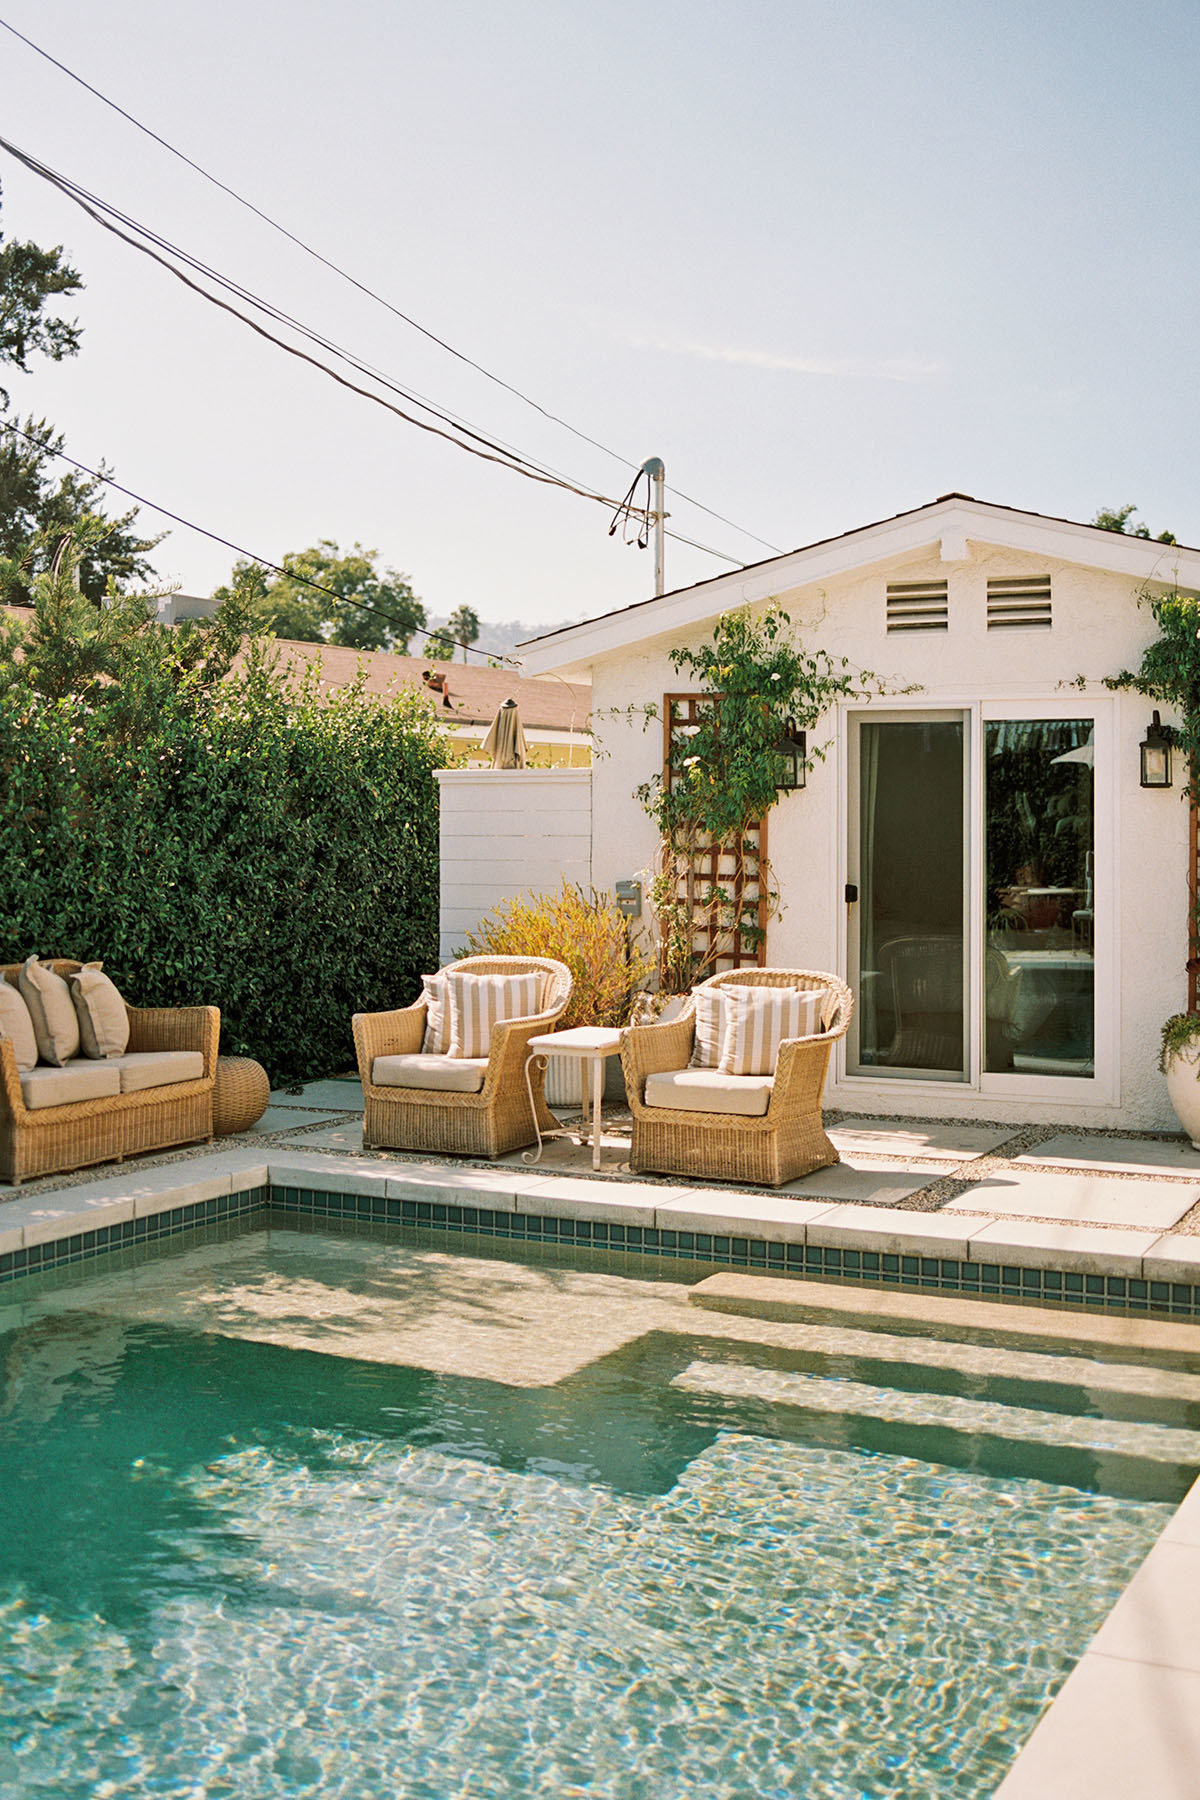 Poolside, Madison opts for vintage outdoor furniture and throw pillows by Outdoor Supply Hardware and Luxury Fabrics L.A.